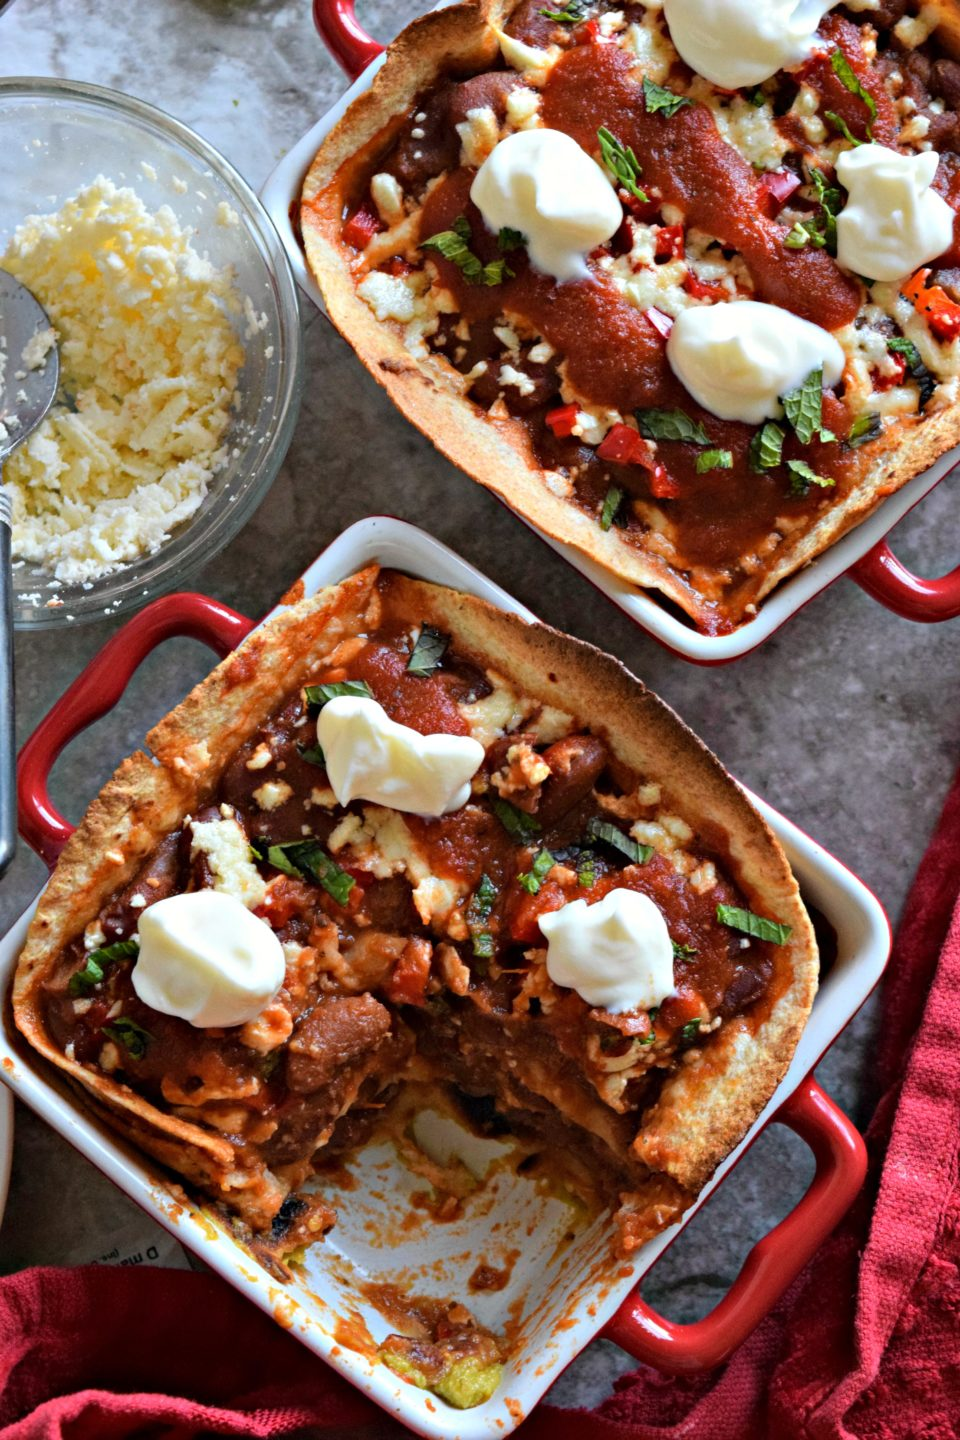 Rajma/Kidney Beans Enchilada Mini Casserole is a perfect weeknight dish!Beans, cheese, tortillas & sauce are the ideal ingredients to make a delicious meal.